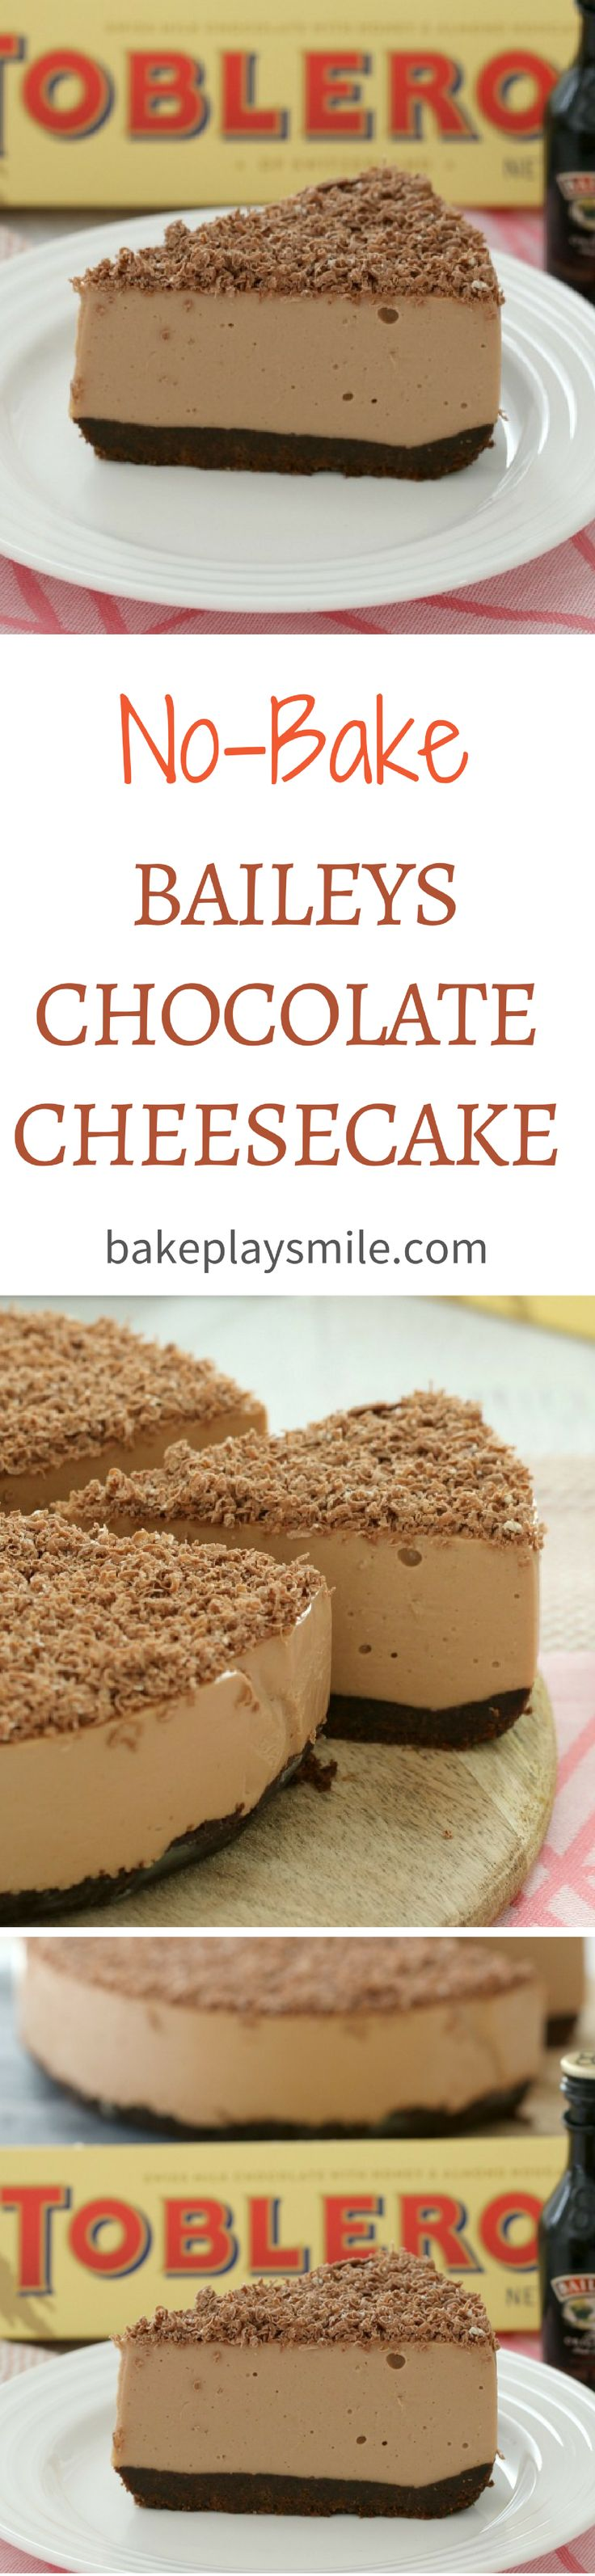 The BEST Baileys Chocolate Cheesecake with Toblerone chocolate… completely no-bake (so there's no need to turn the oven on!). Easy and delicious! #baileys #cheesecake #nobake #toblerone #easy #chocolate #thermomix #conventional #dessert